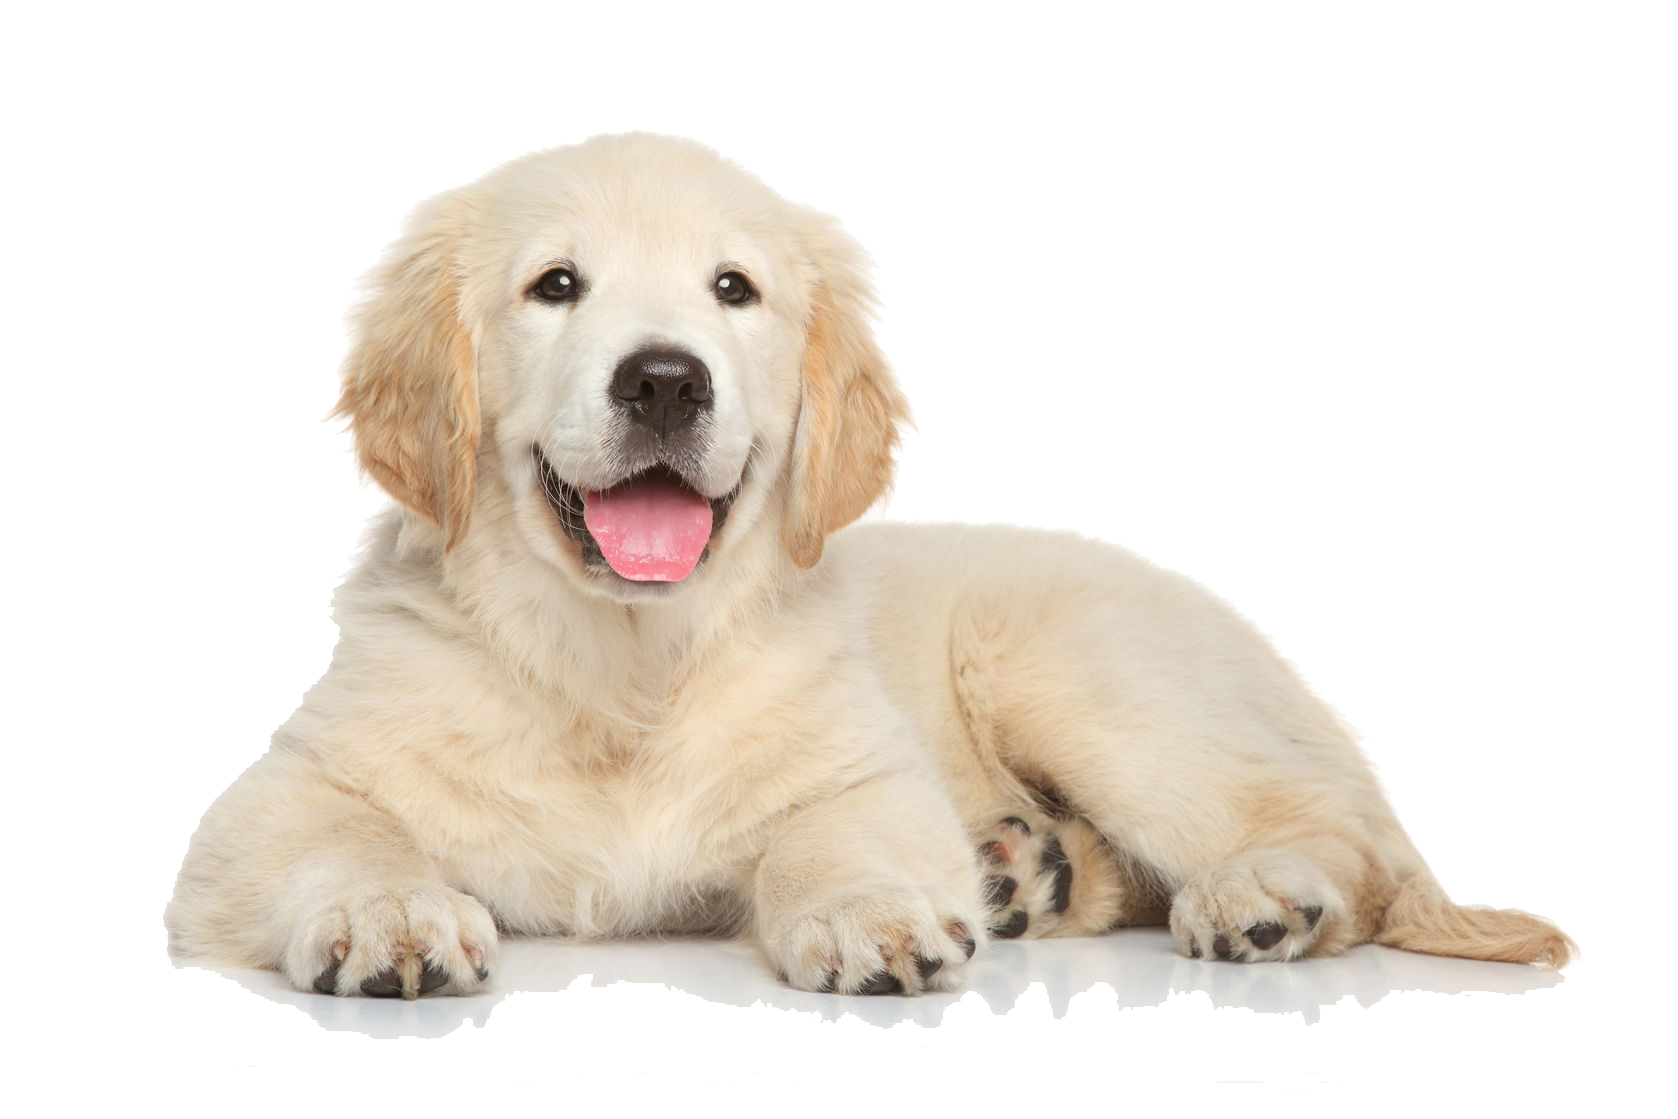 Golden Retriever PNG Photo Image.